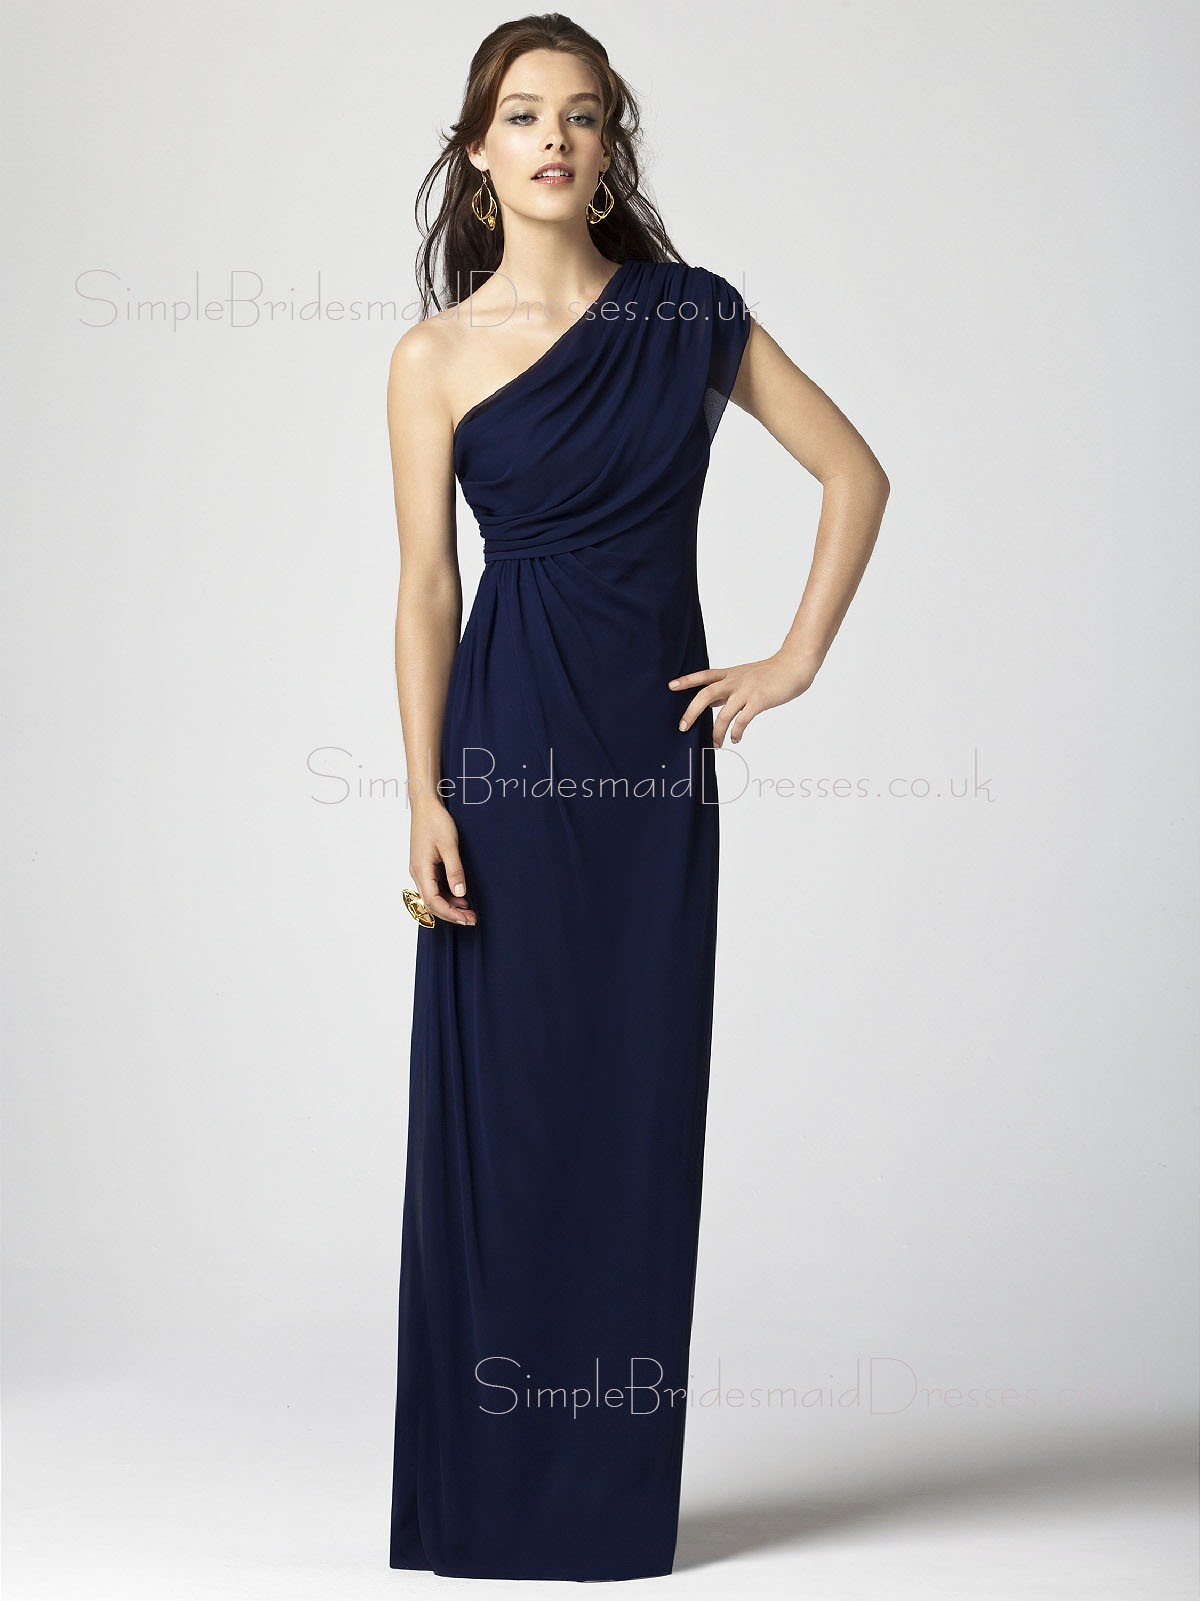 One Shoulder Bridesmaid Dresses UK | Cheap One Shoulder Bridesmaid ...